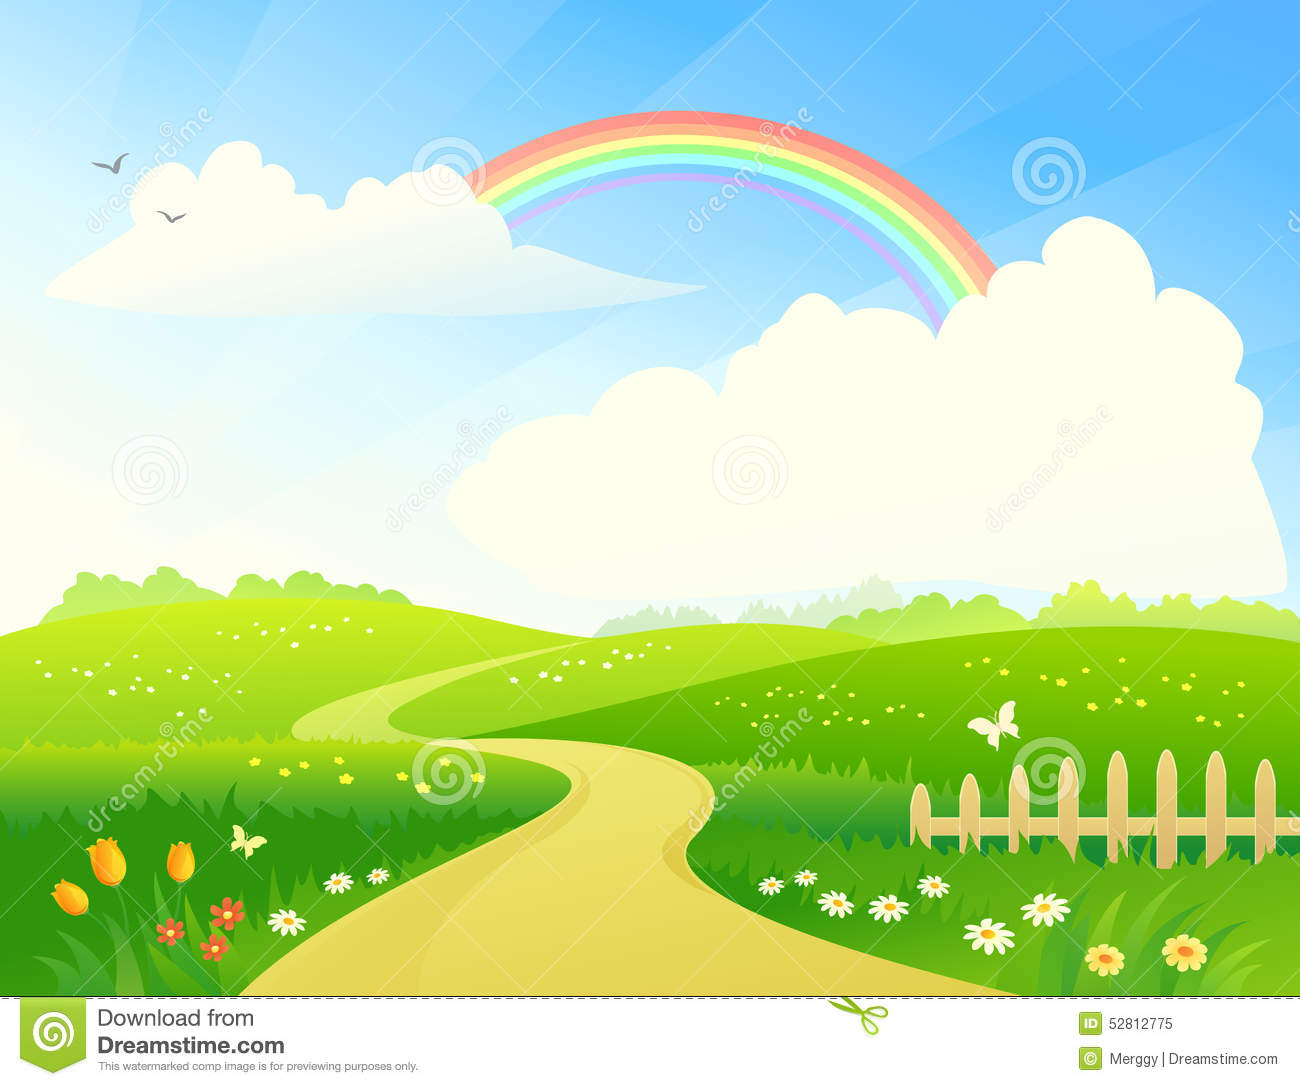 Landscape With Rainbow Stock Vector - Image: 52812775